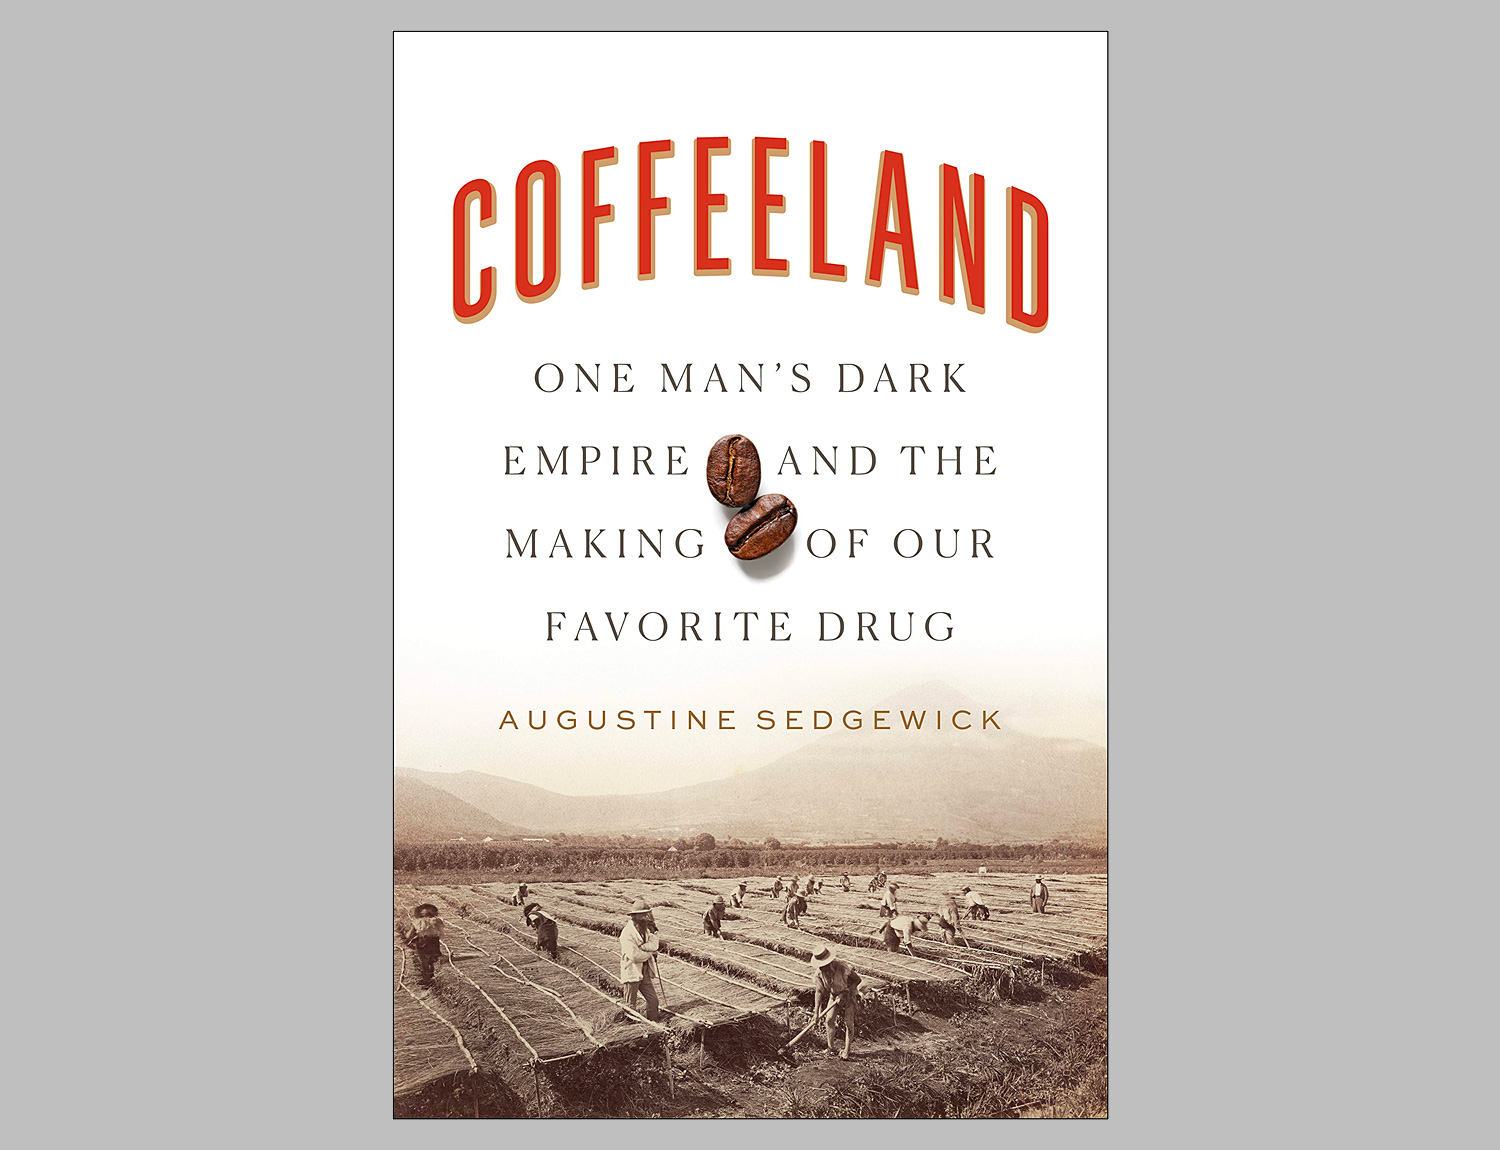 Coffeeland: One Man's Dark Empire and the Making of Our Favorite Drug at werd.com